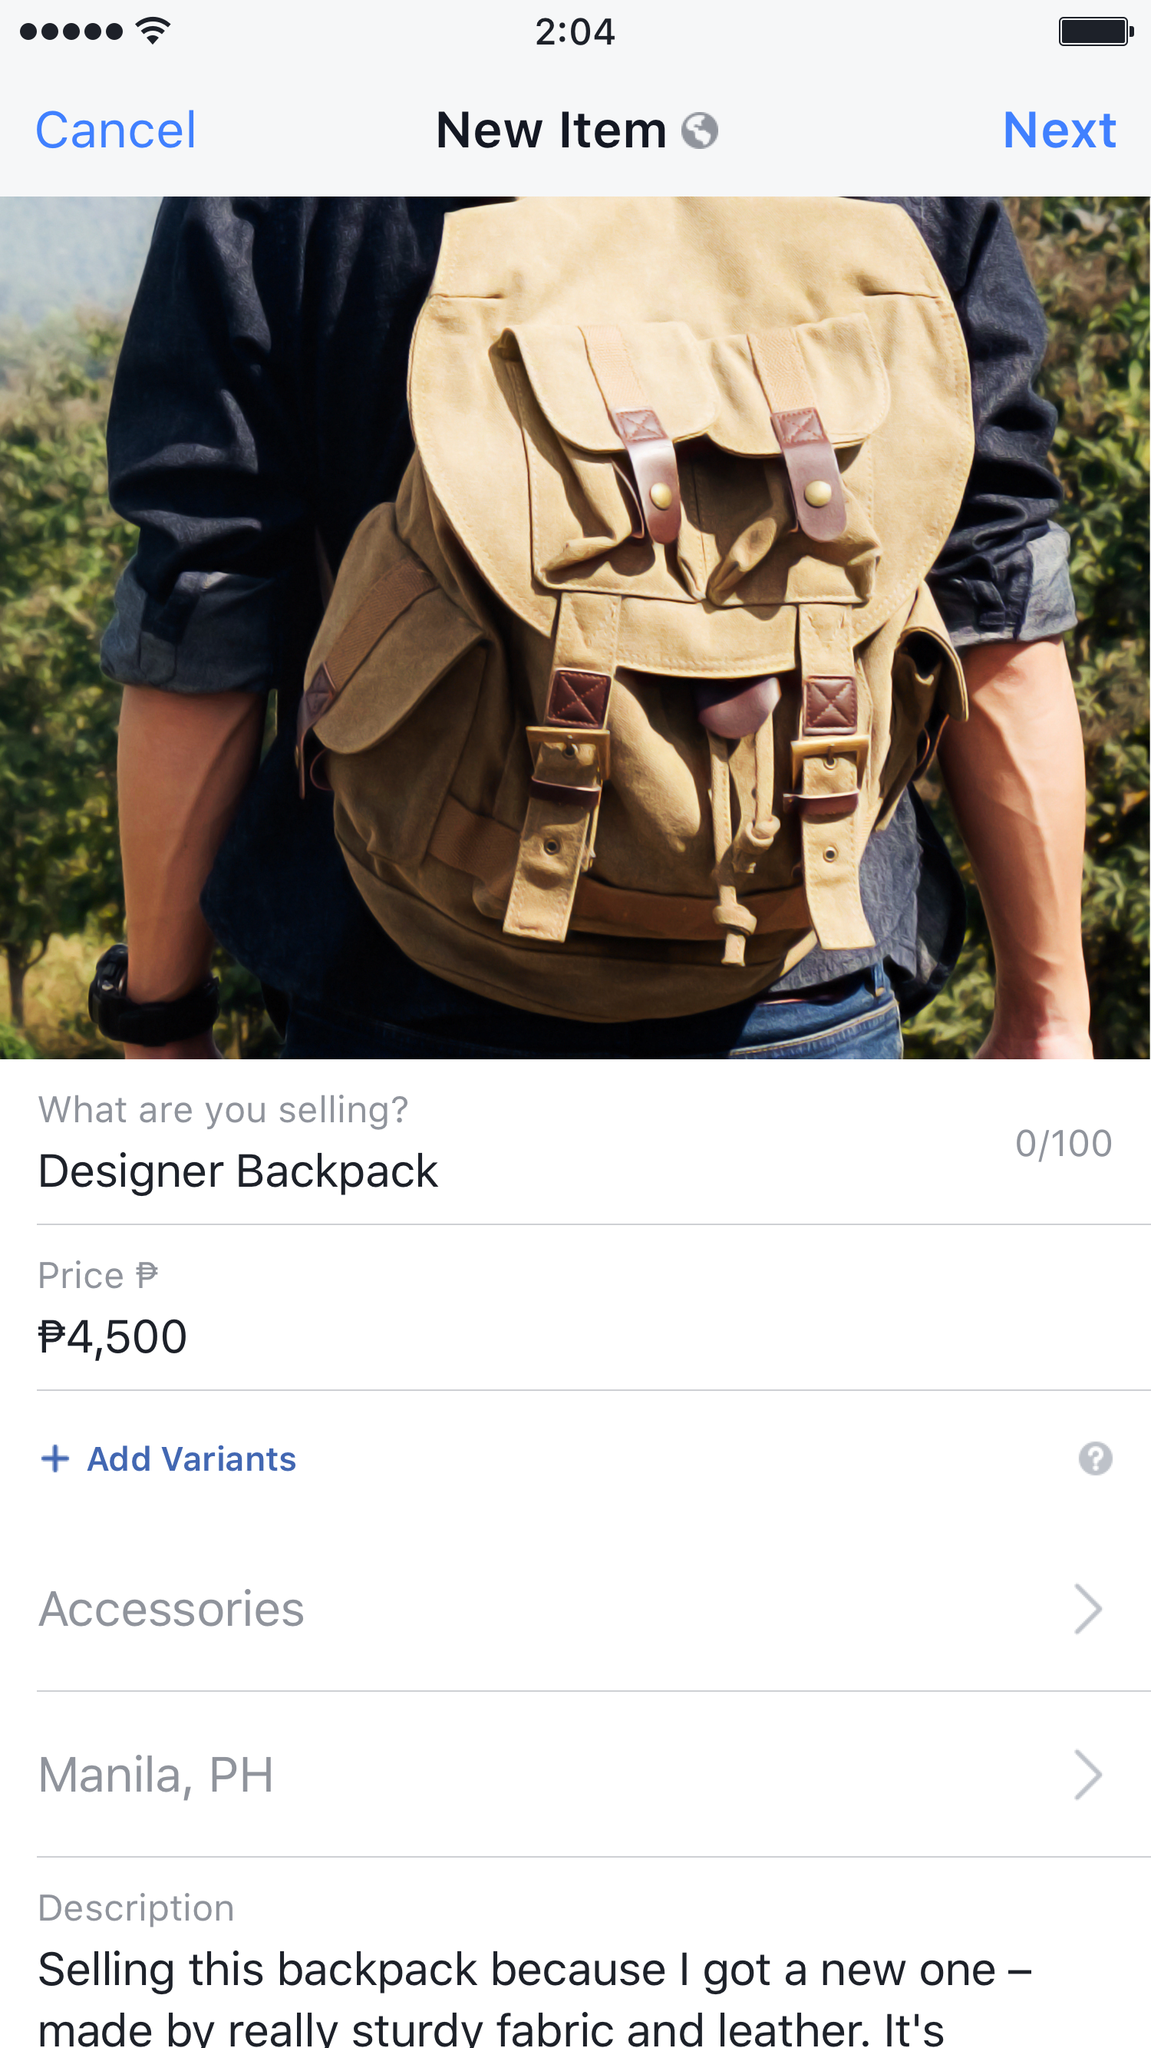 Just fill up the seller's form and post your sale item in Marketplace. (Image from Facebook)